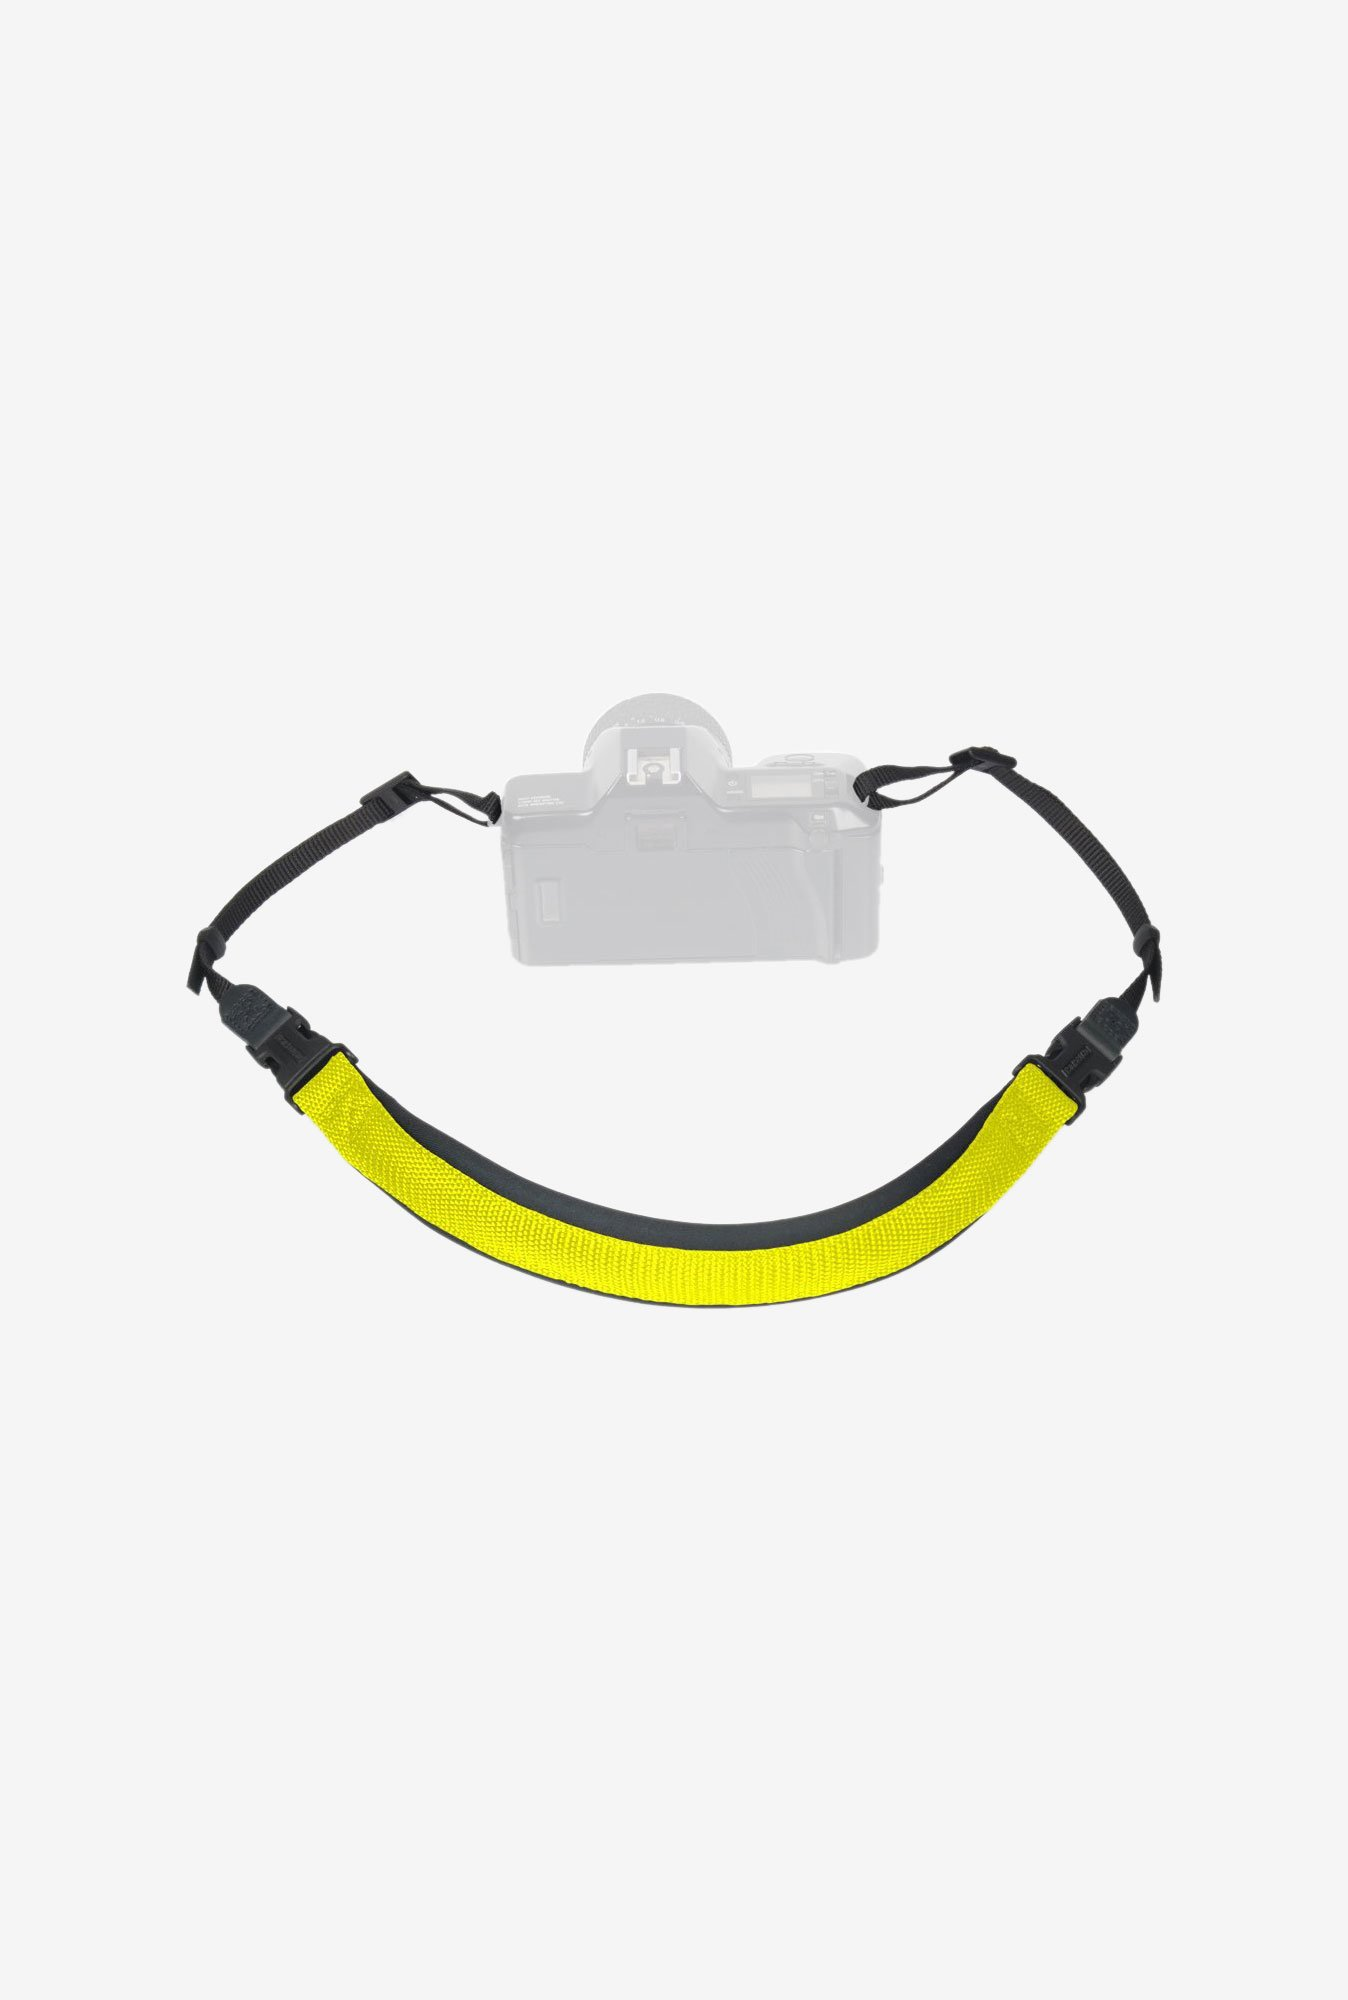 Op/Tech Usa 3805332 Envy Strap (Yellow)